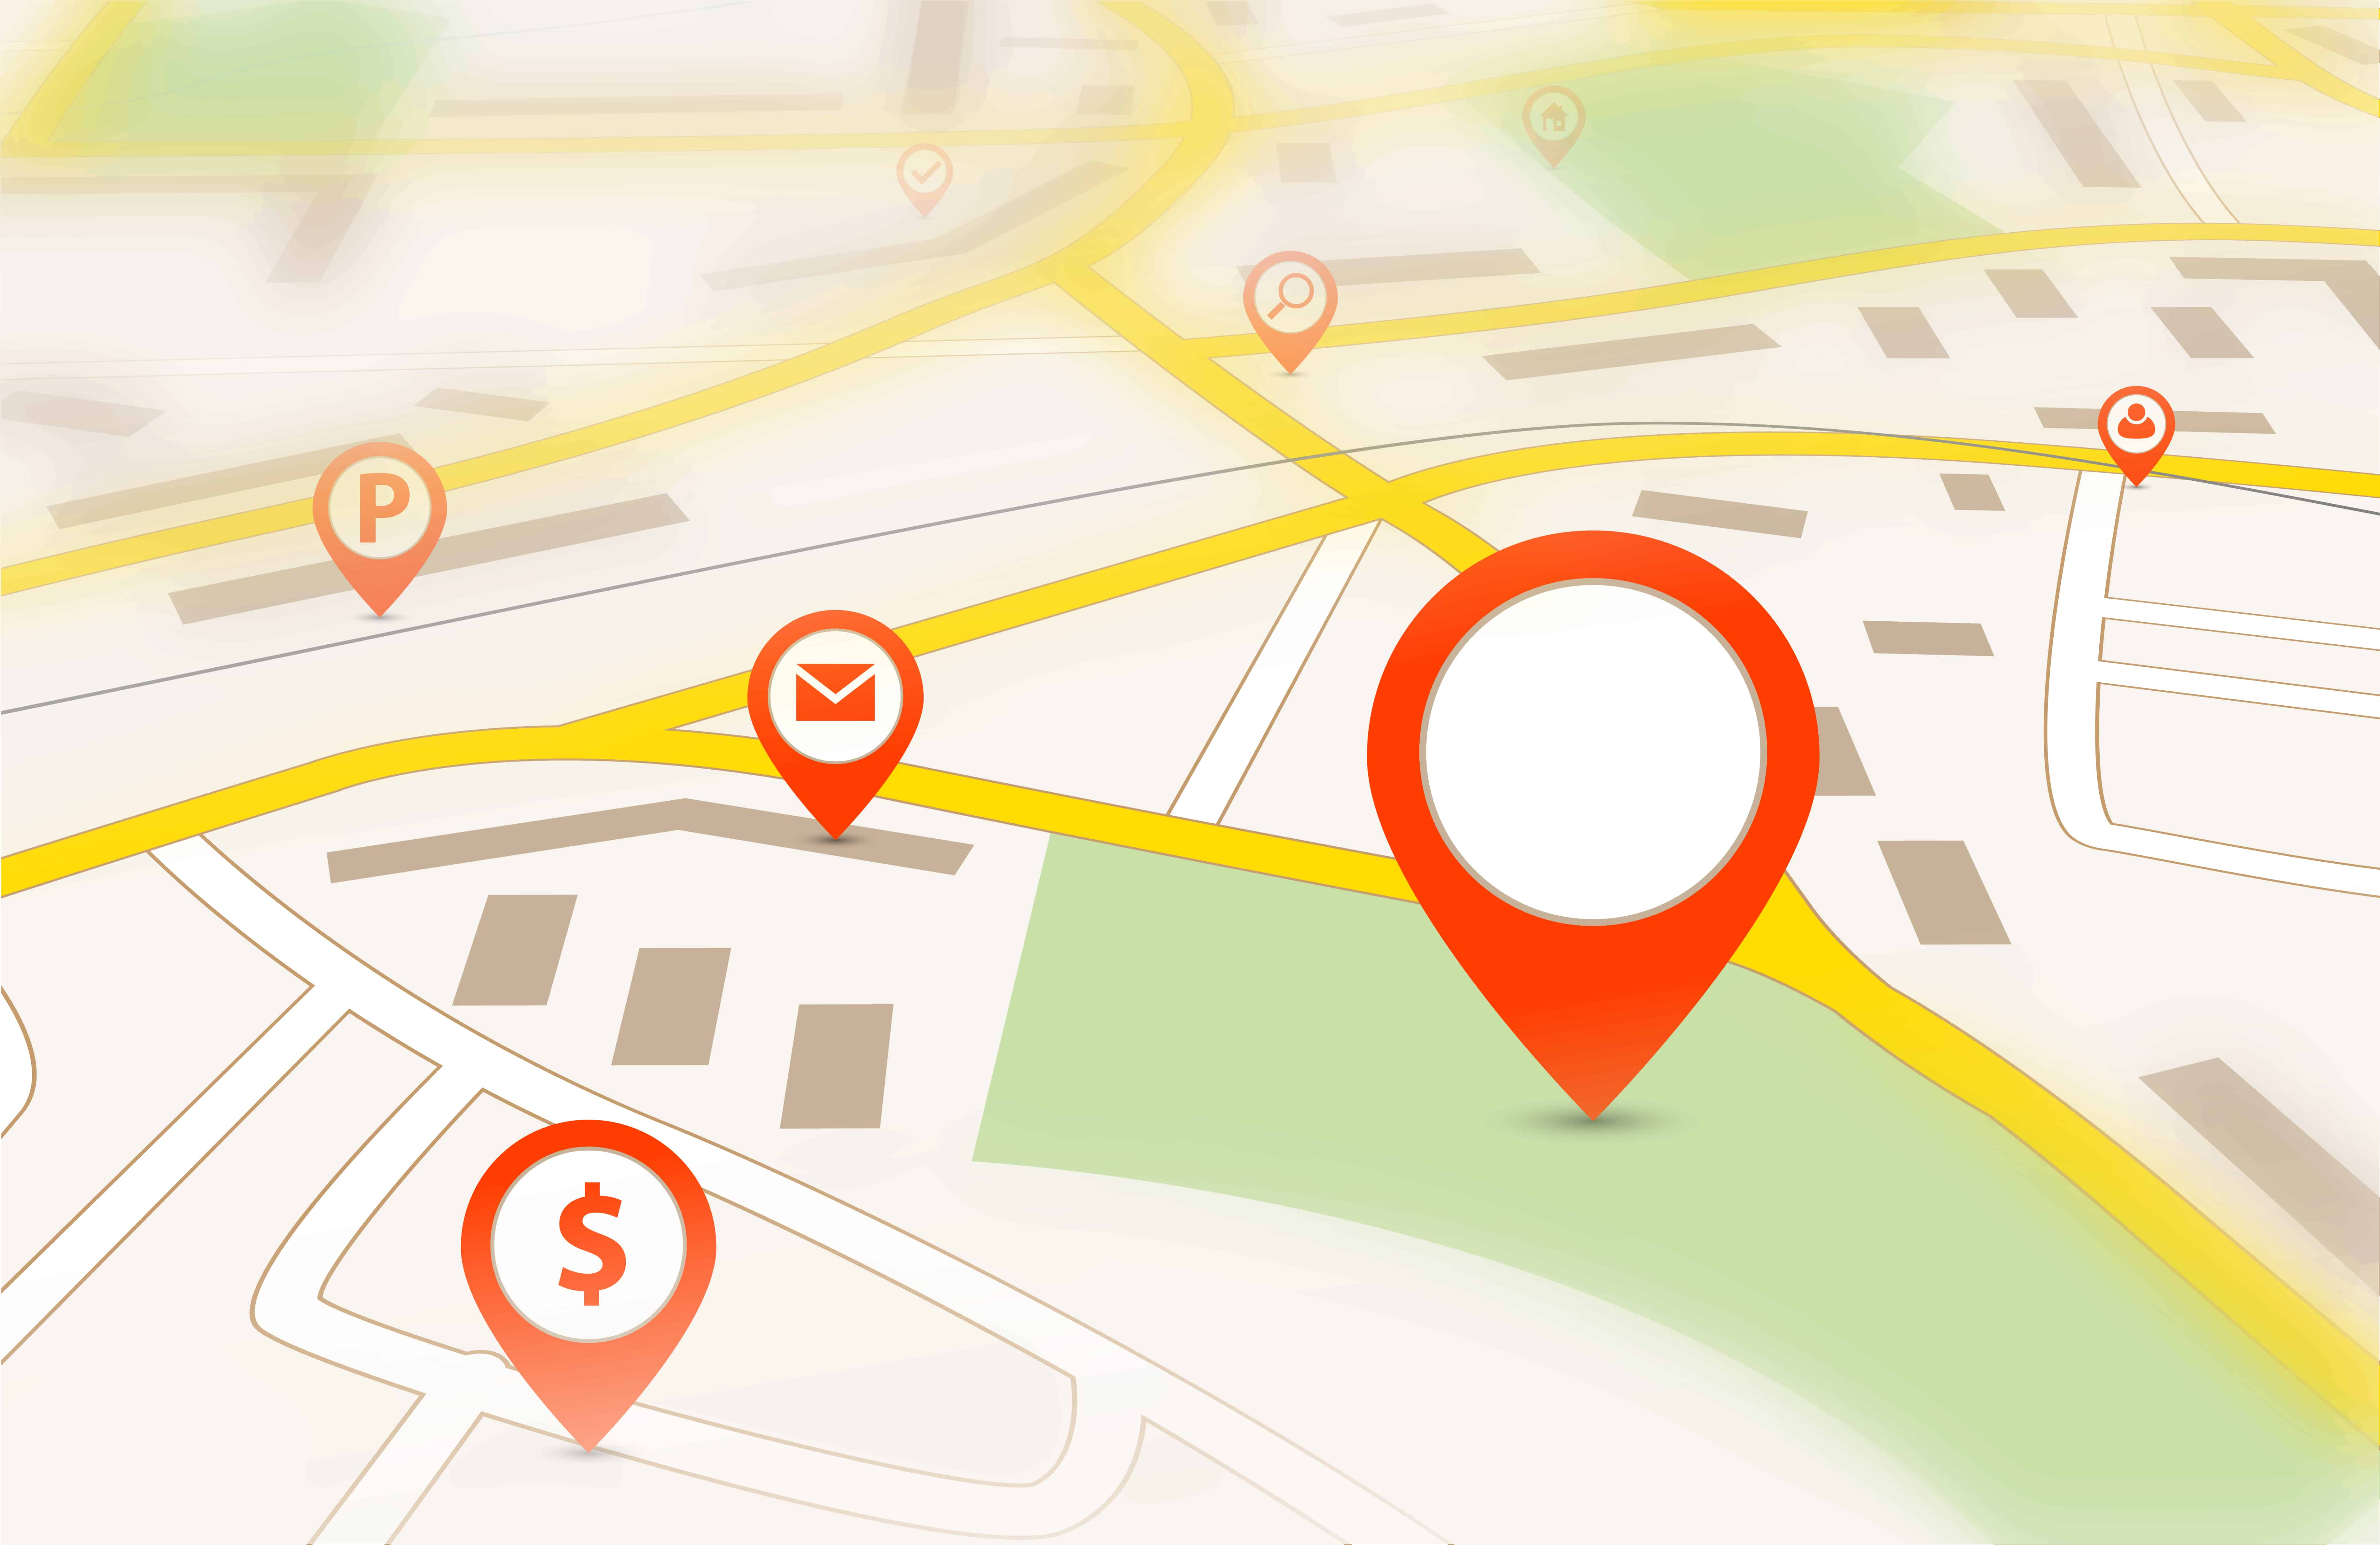 Google Drops Location Feature but Your SEO Team Can Still Monitor Your Local Results